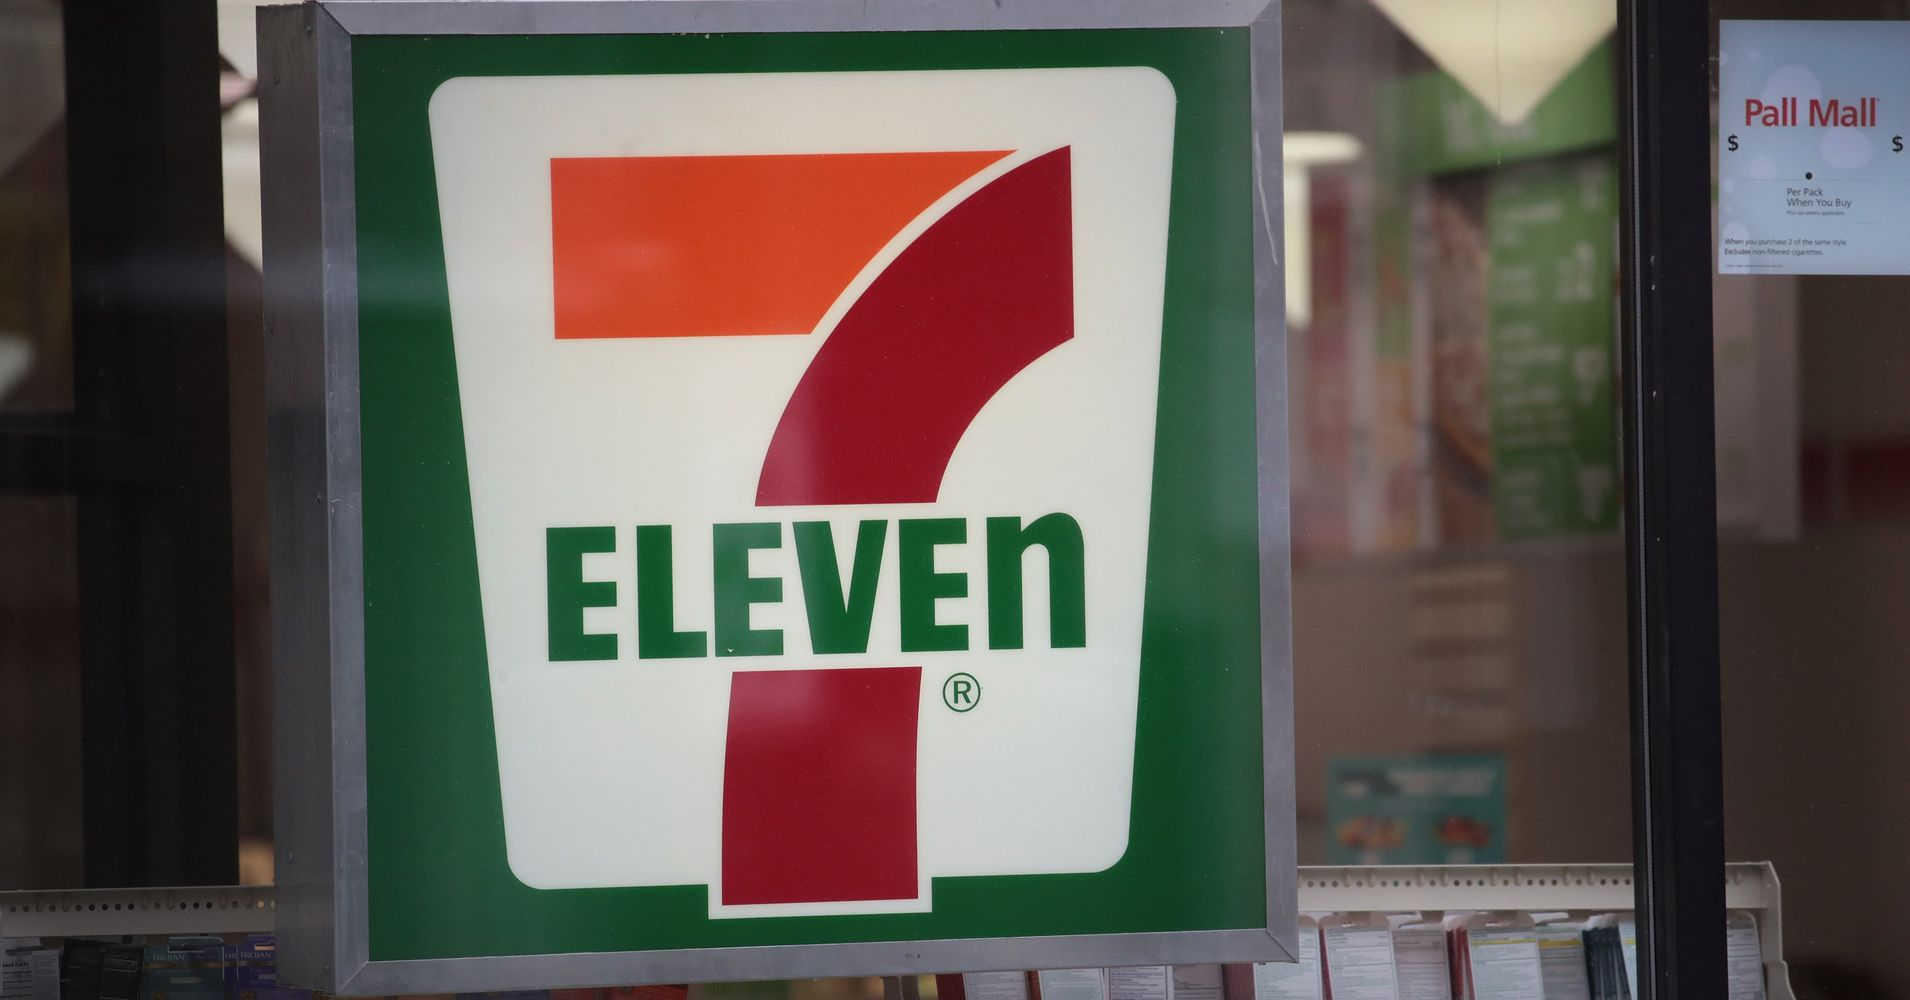 7-Eleven Says It Won't Be Selling CBD, Contrary To Claims From CBD Company (CORRECTION)